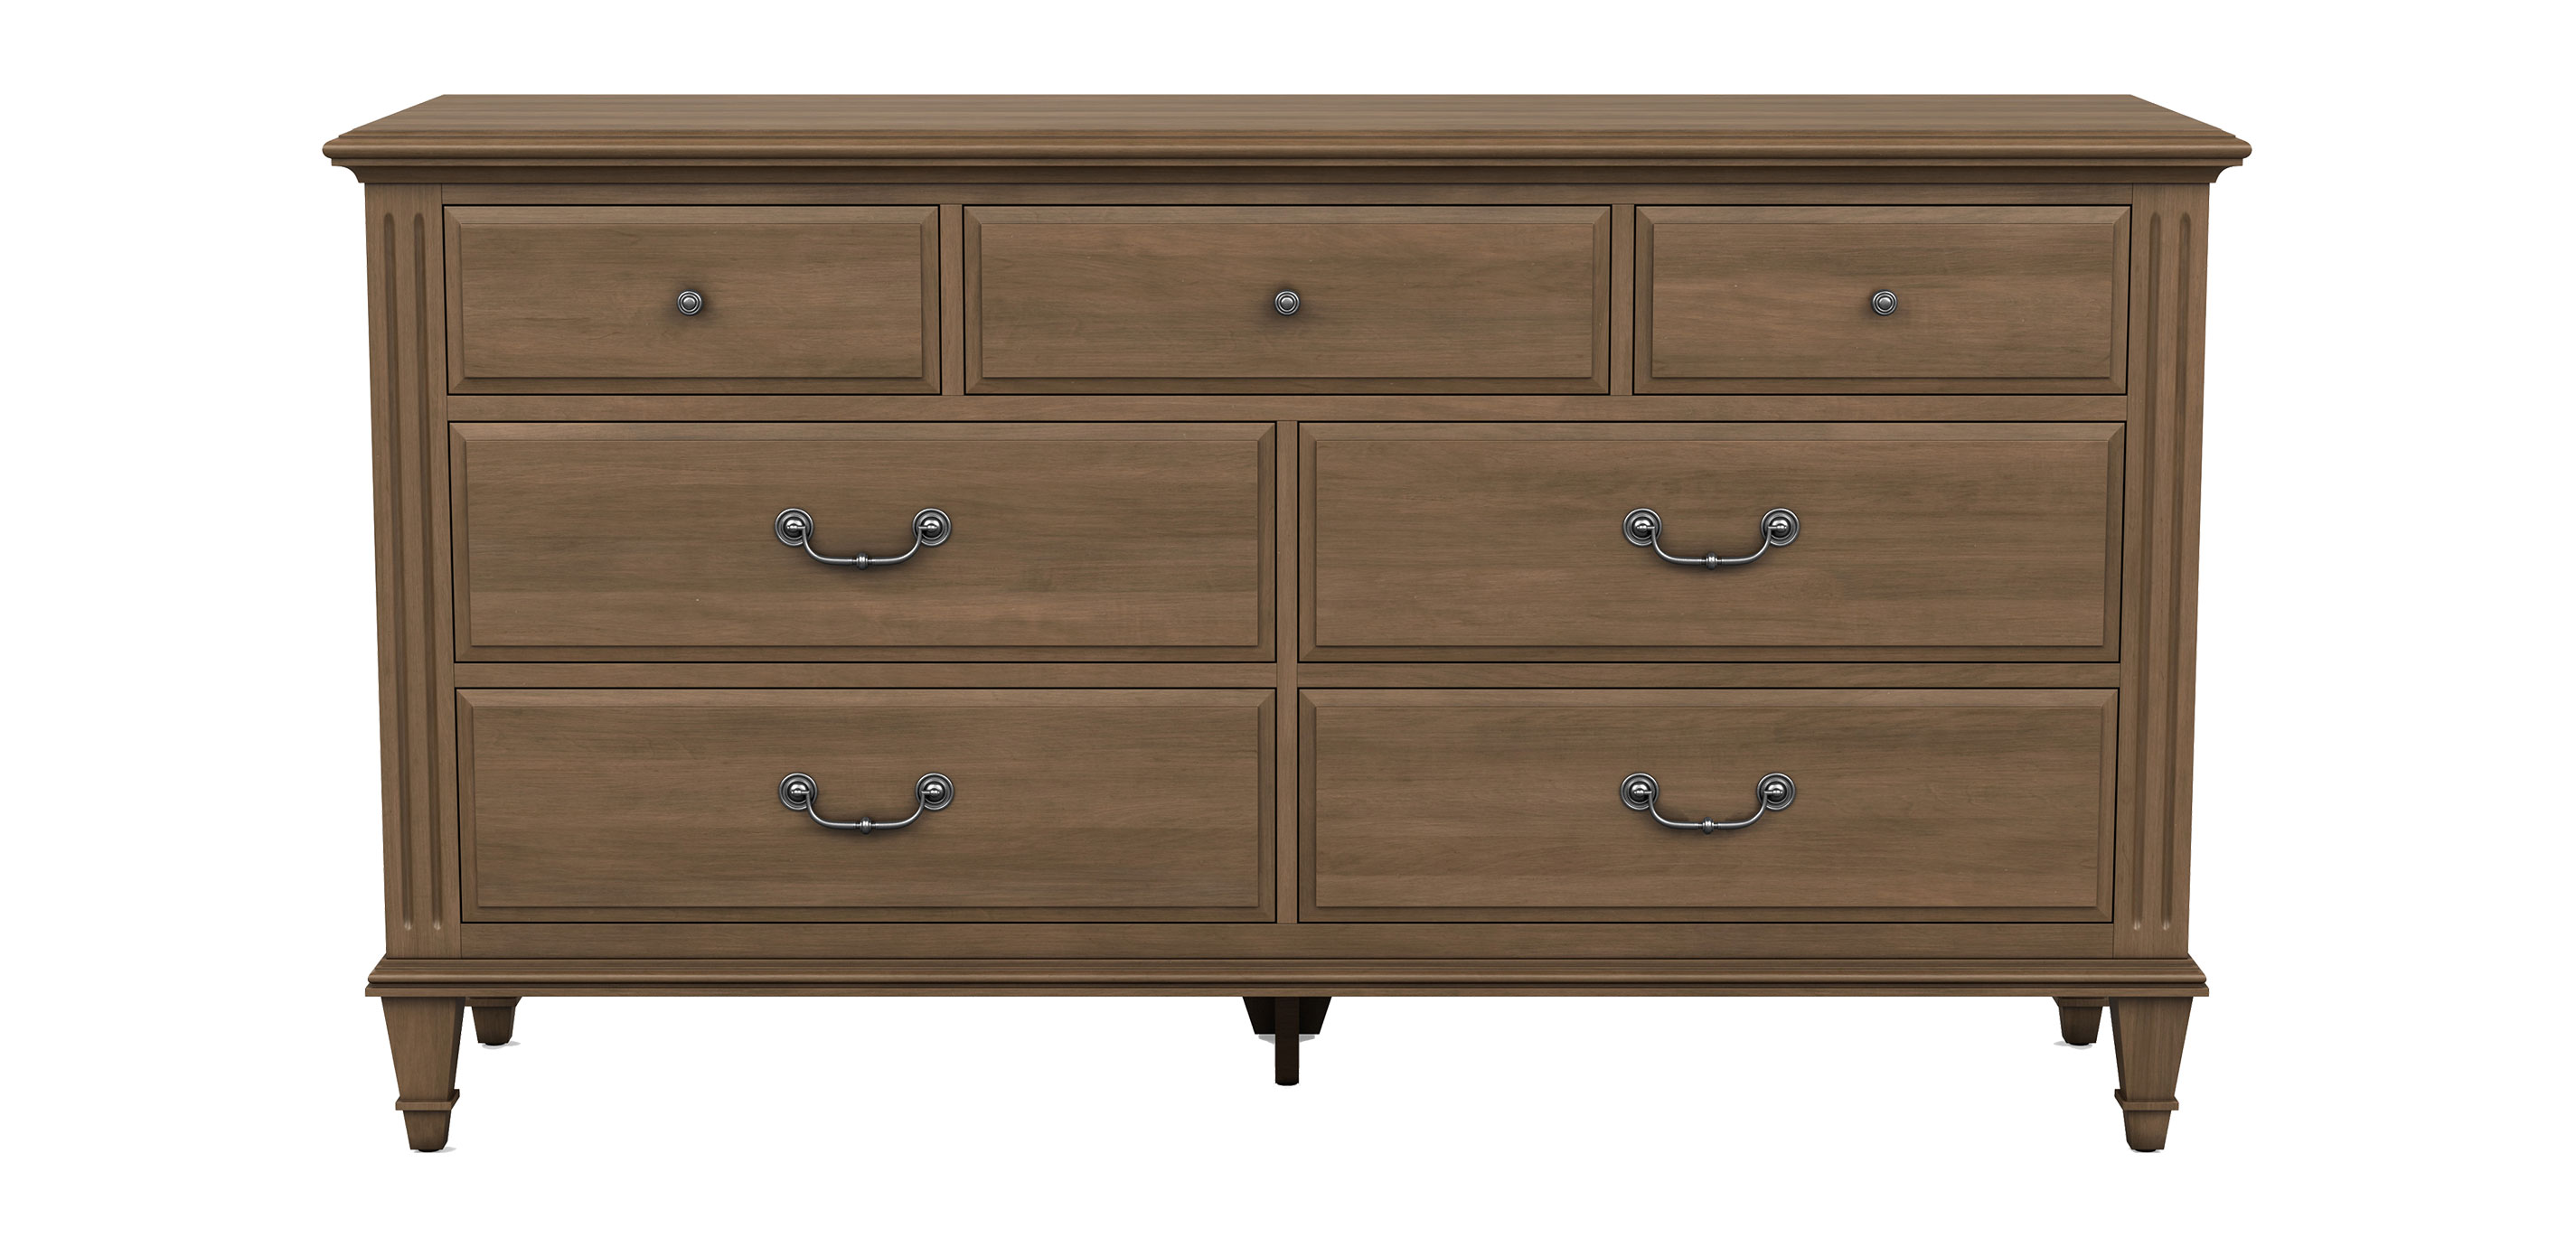 drawer products flint furniture century by dresser solid handcrafted modern mid alley fullxfull hardwood wood il